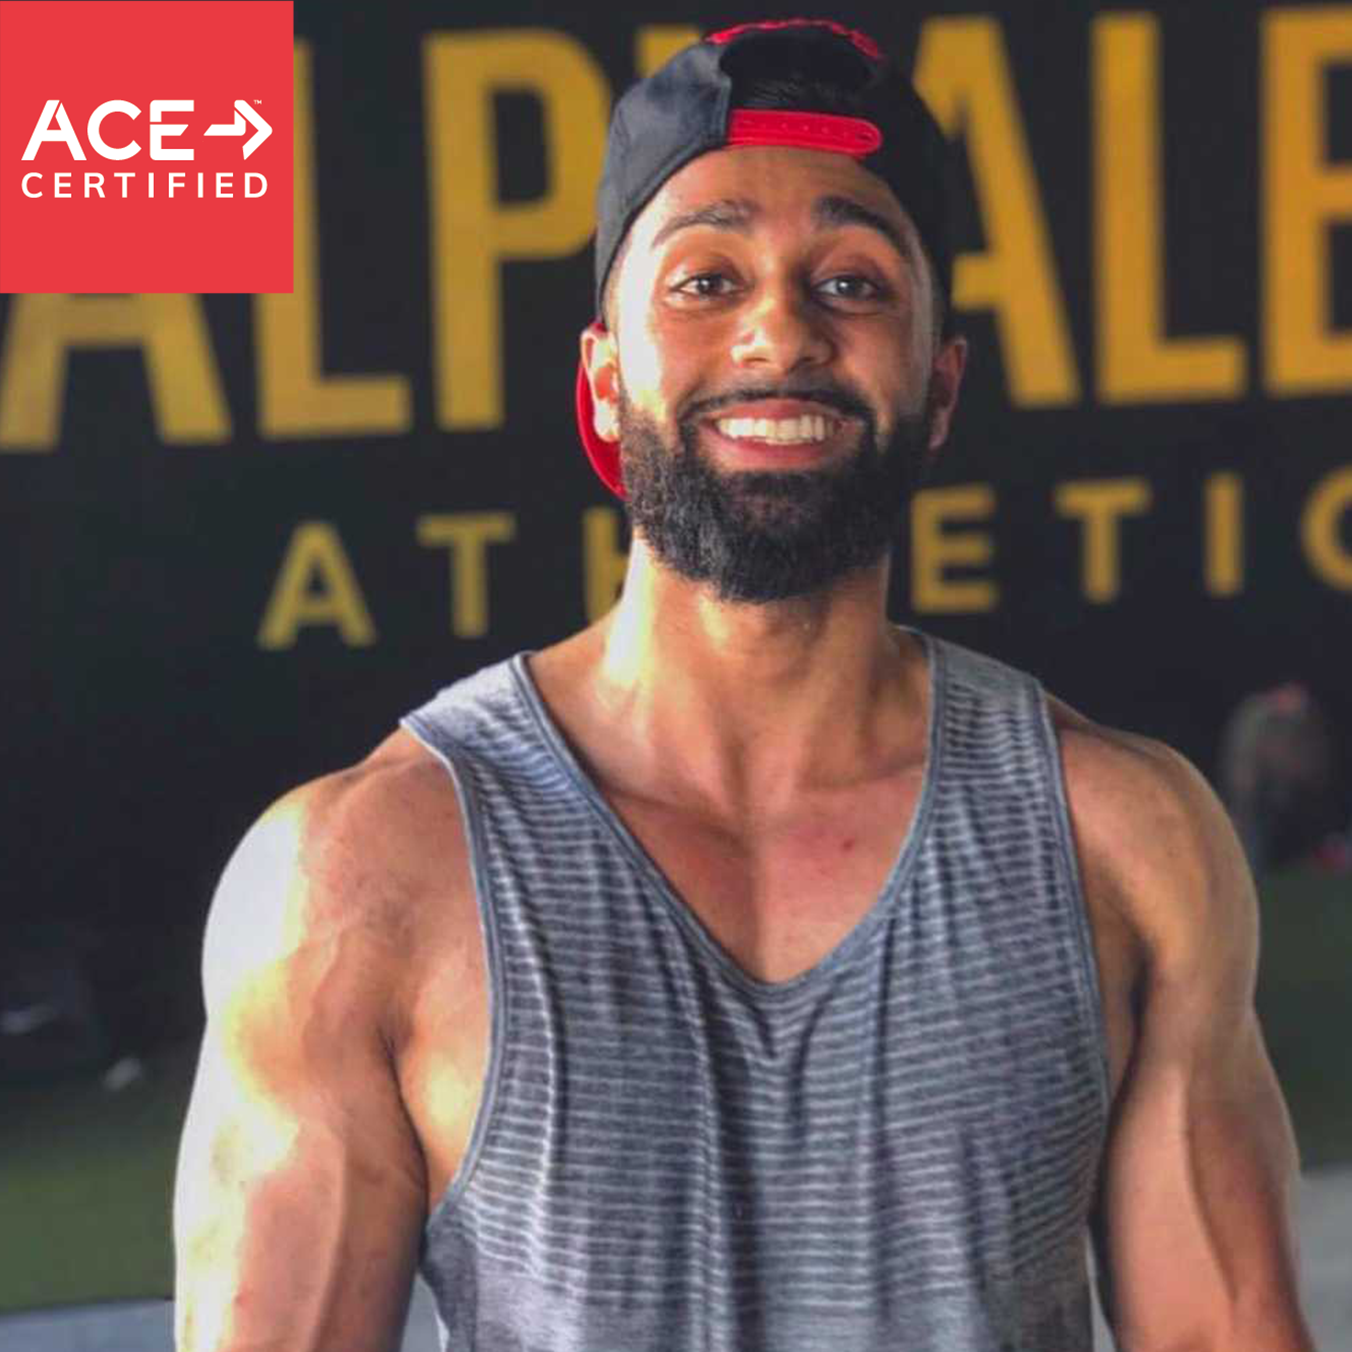 sameer ace certified personal trainer